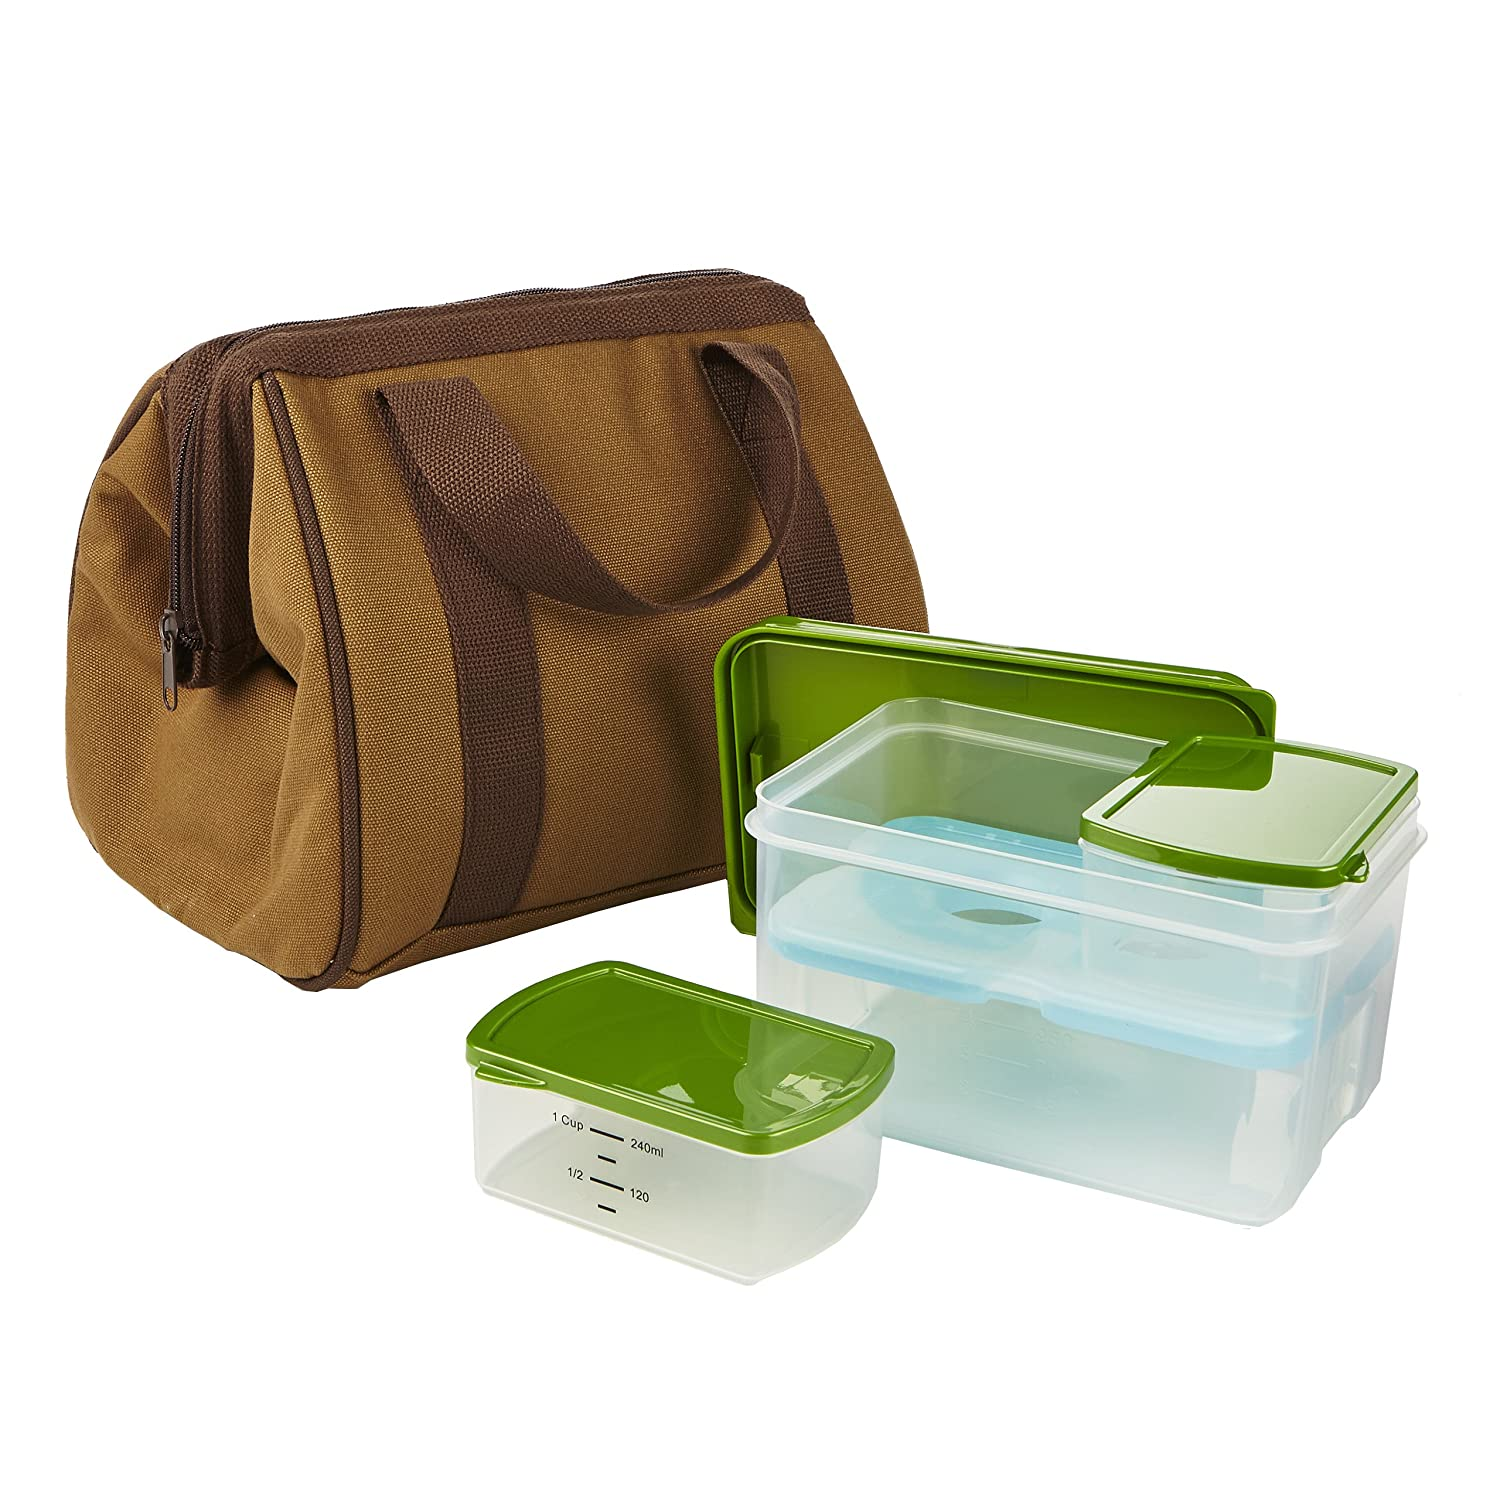 Fit & Fresh 3020KIT344 Men's Big Phil Lunch Bag Kit with Lunch on the Go Container, Brown/Green 3020FF344LS